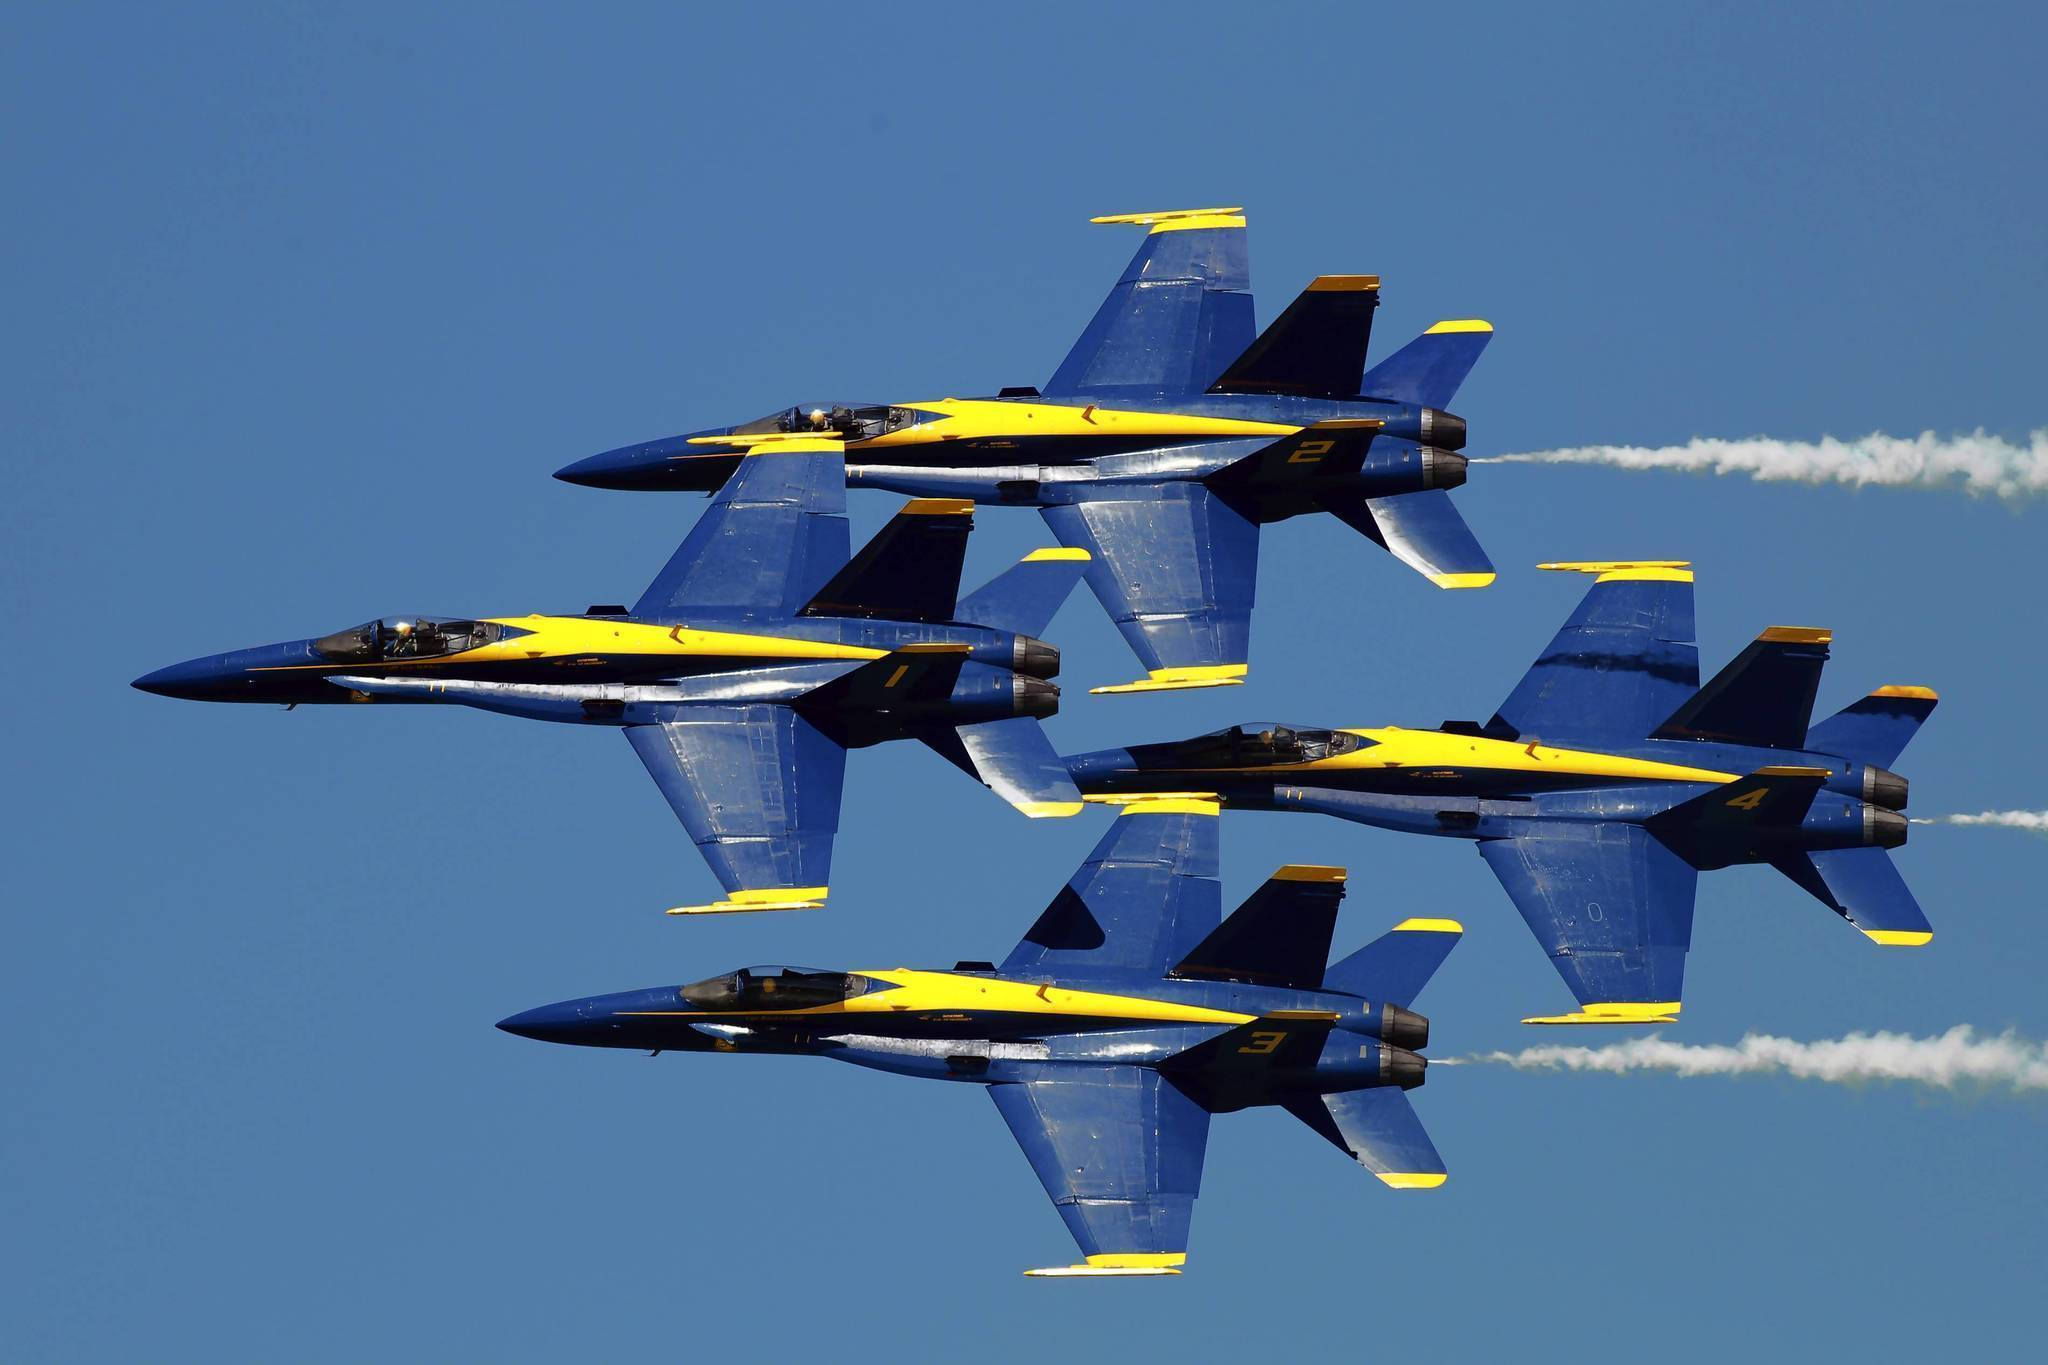 Blue angels will fly over downtown chicago chicago tribune